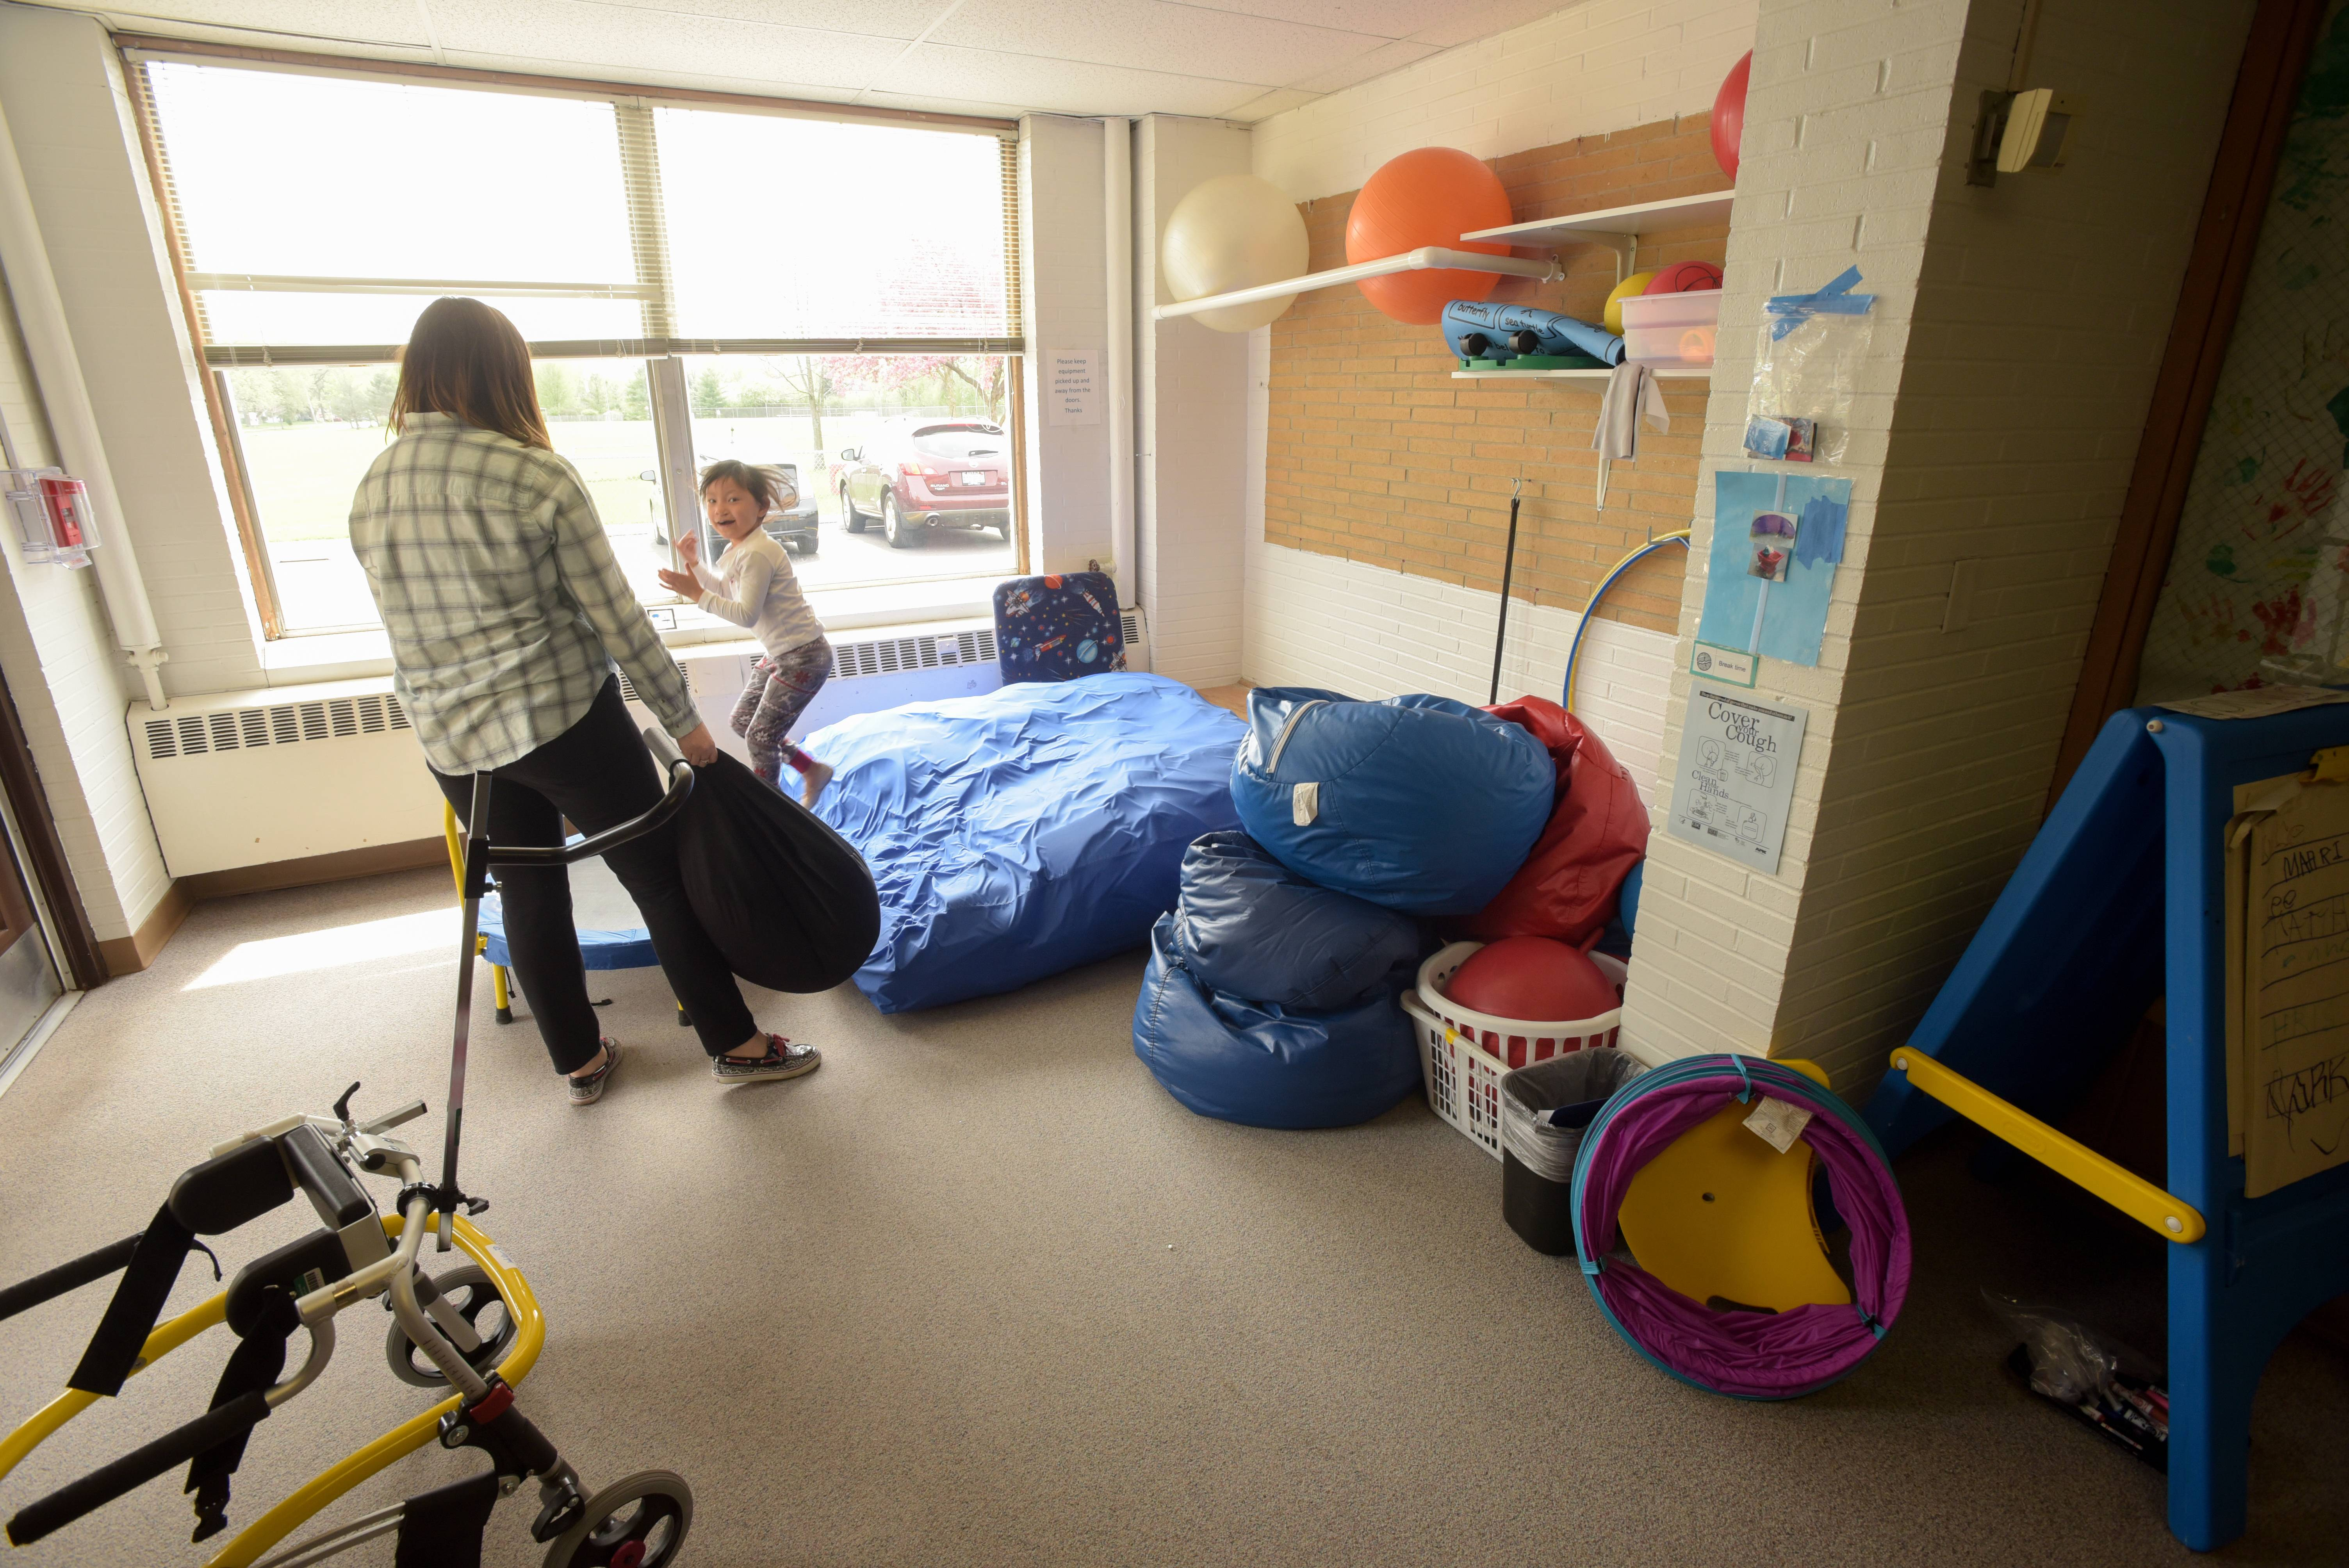 Dist. 200 looks at options for early childhood center